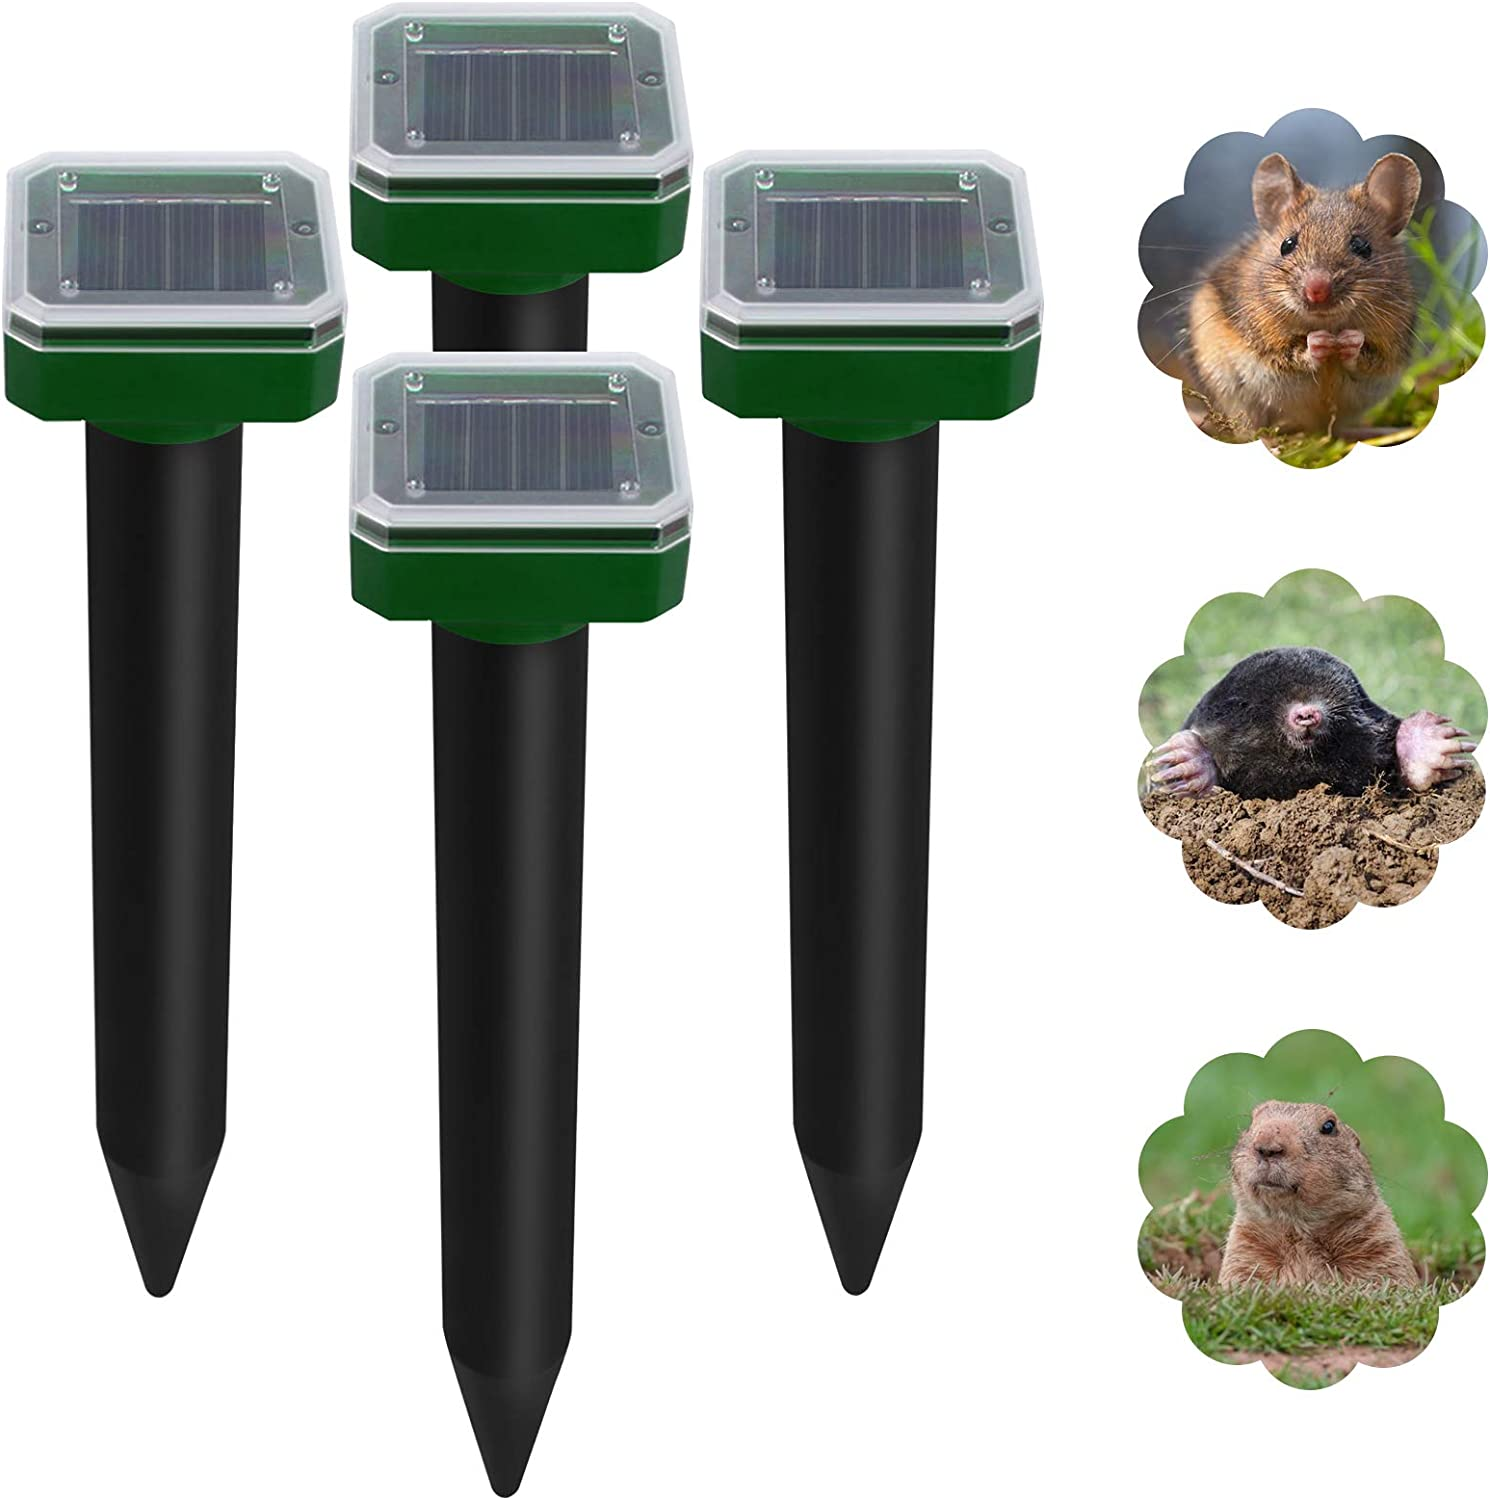 Pet Safe Pack of 4 Sonic Mole Repellent Solar Powered for Lawn Garden Yard, IP65 Waterproof Outdoor Ultrasonic Snake Repellent for Get Rid of Mole, Gopher, Snakes, Vole and Other Underground Pests